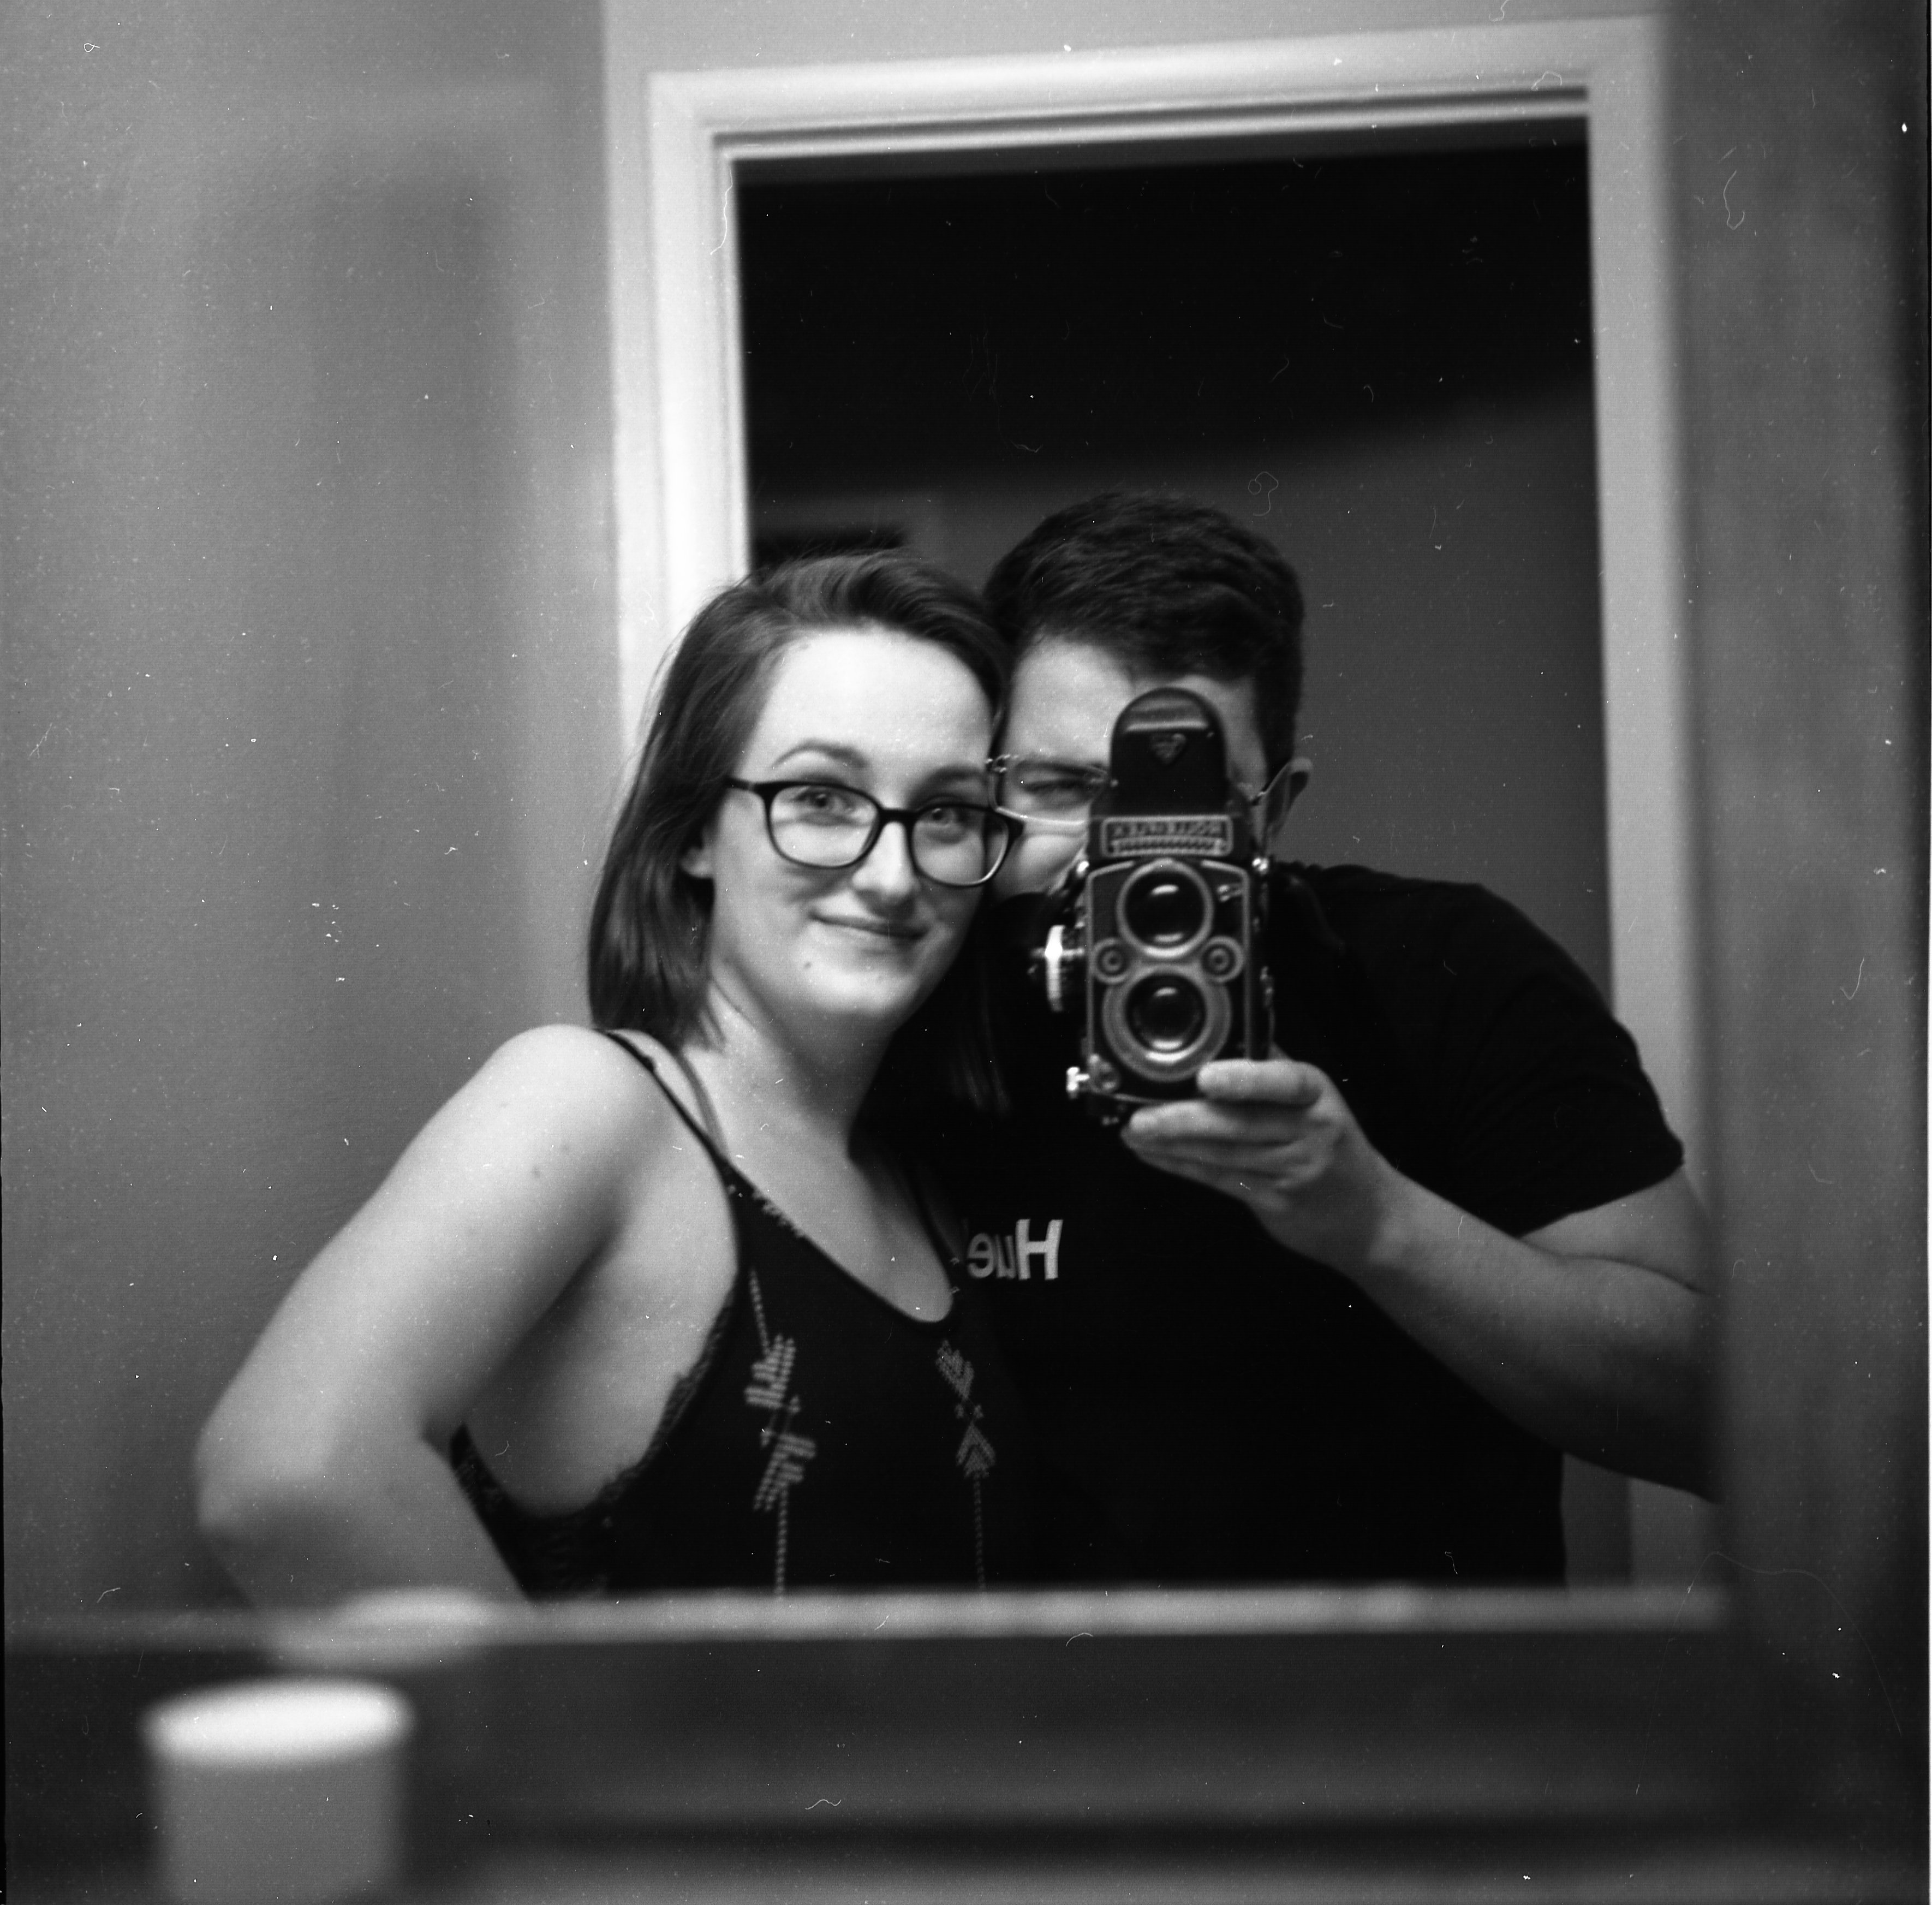 a balck and white selfie of a man and a woman taken in a mirror with a twin lens reflex camera